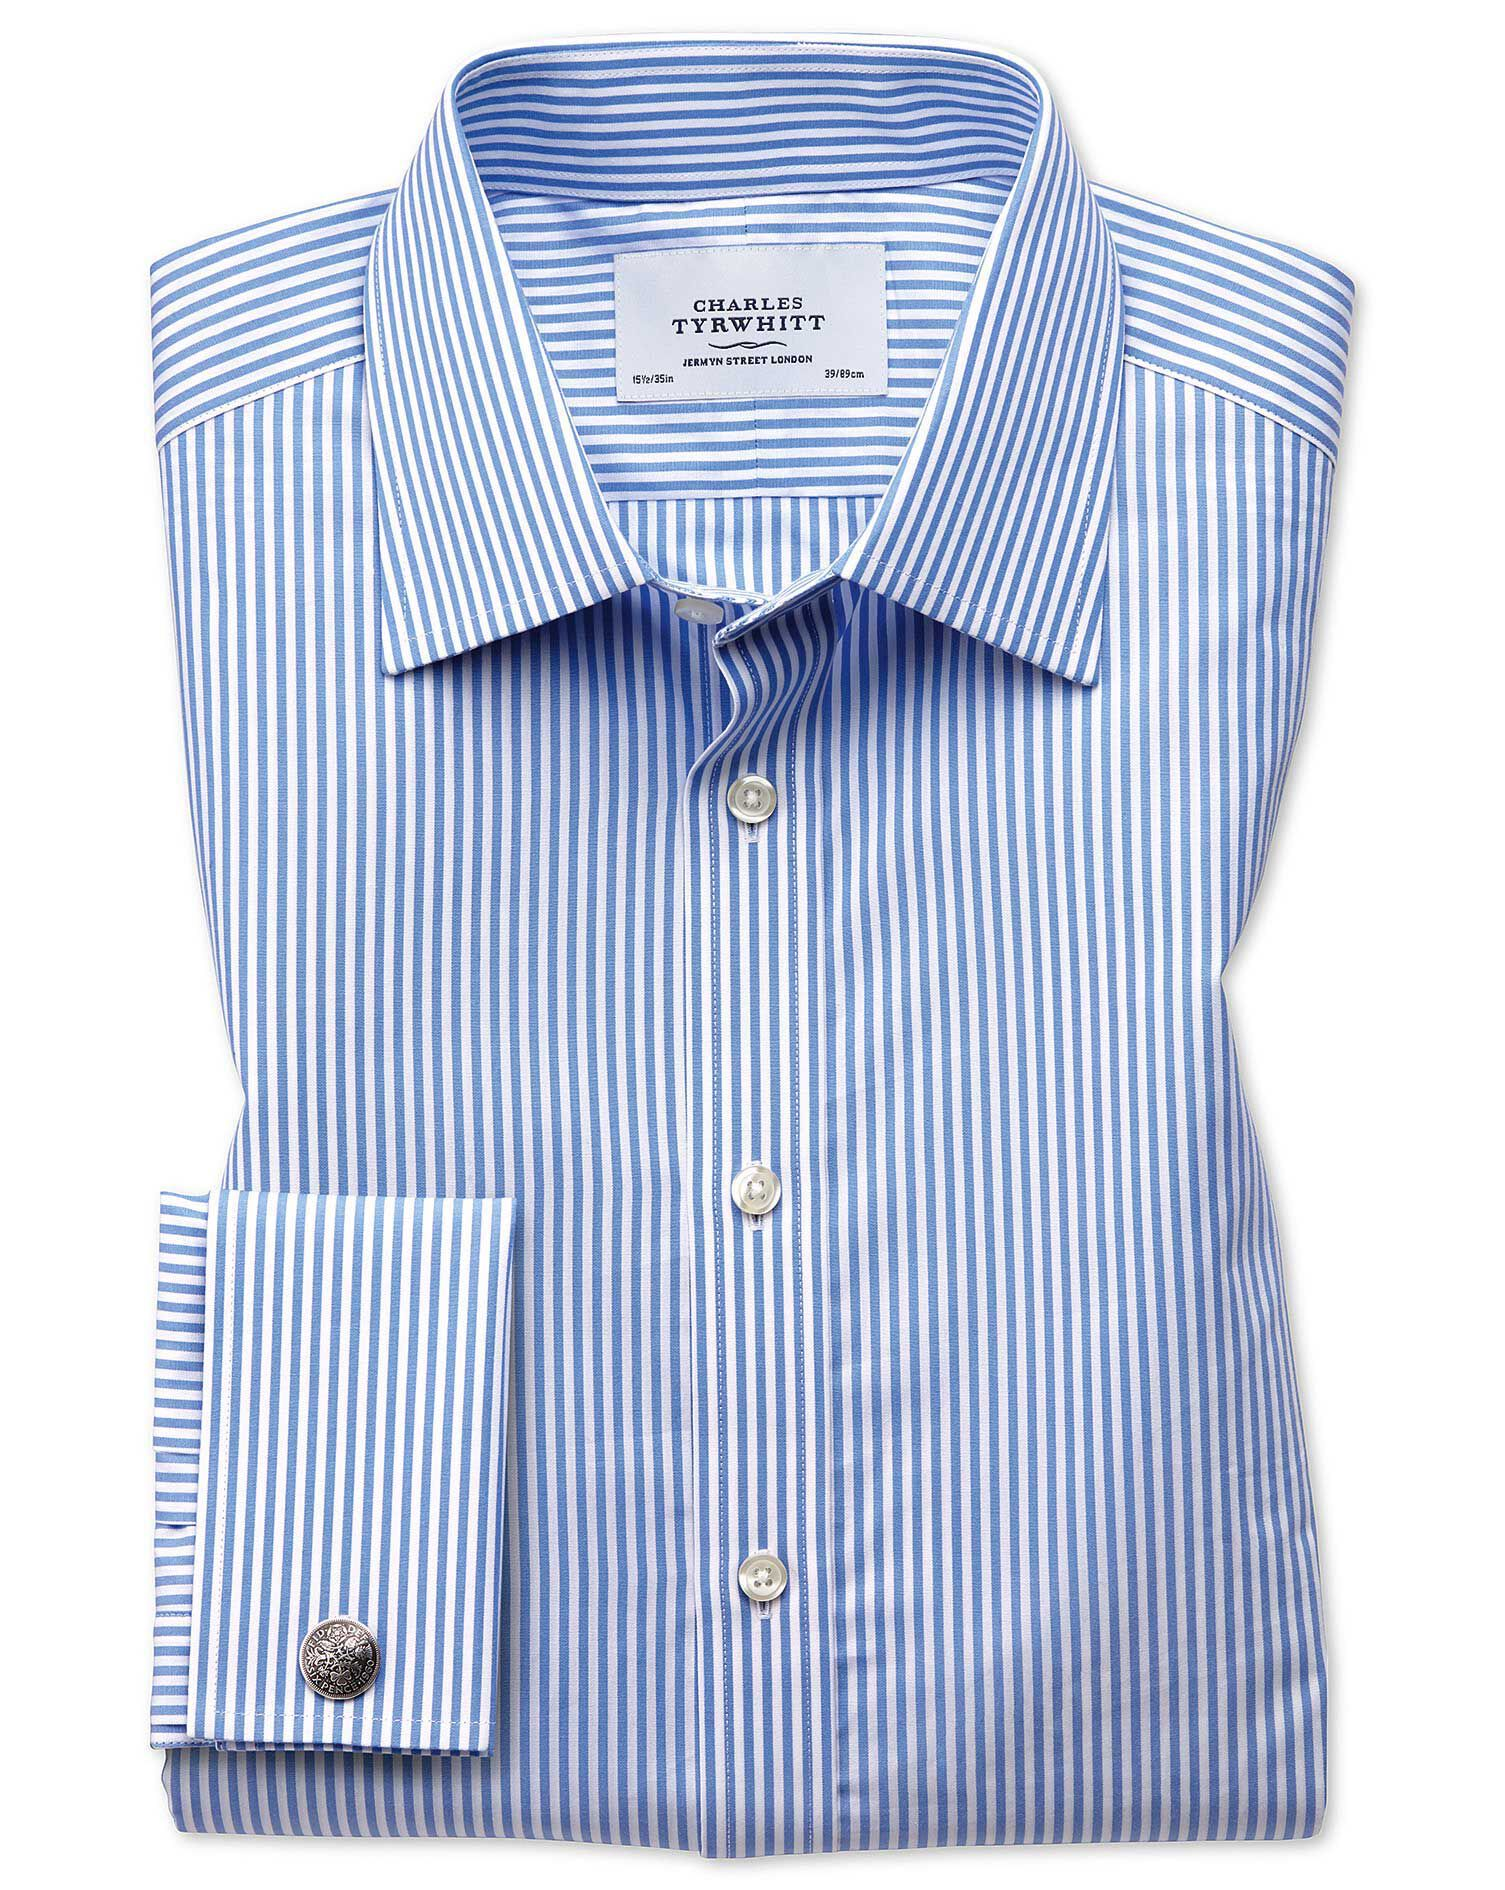 Extra Slim Fit Bengal Stripe Sky Blue Cotton Formal Shirt Single Cuff Size 16/33 by Charles Tyrwhitt